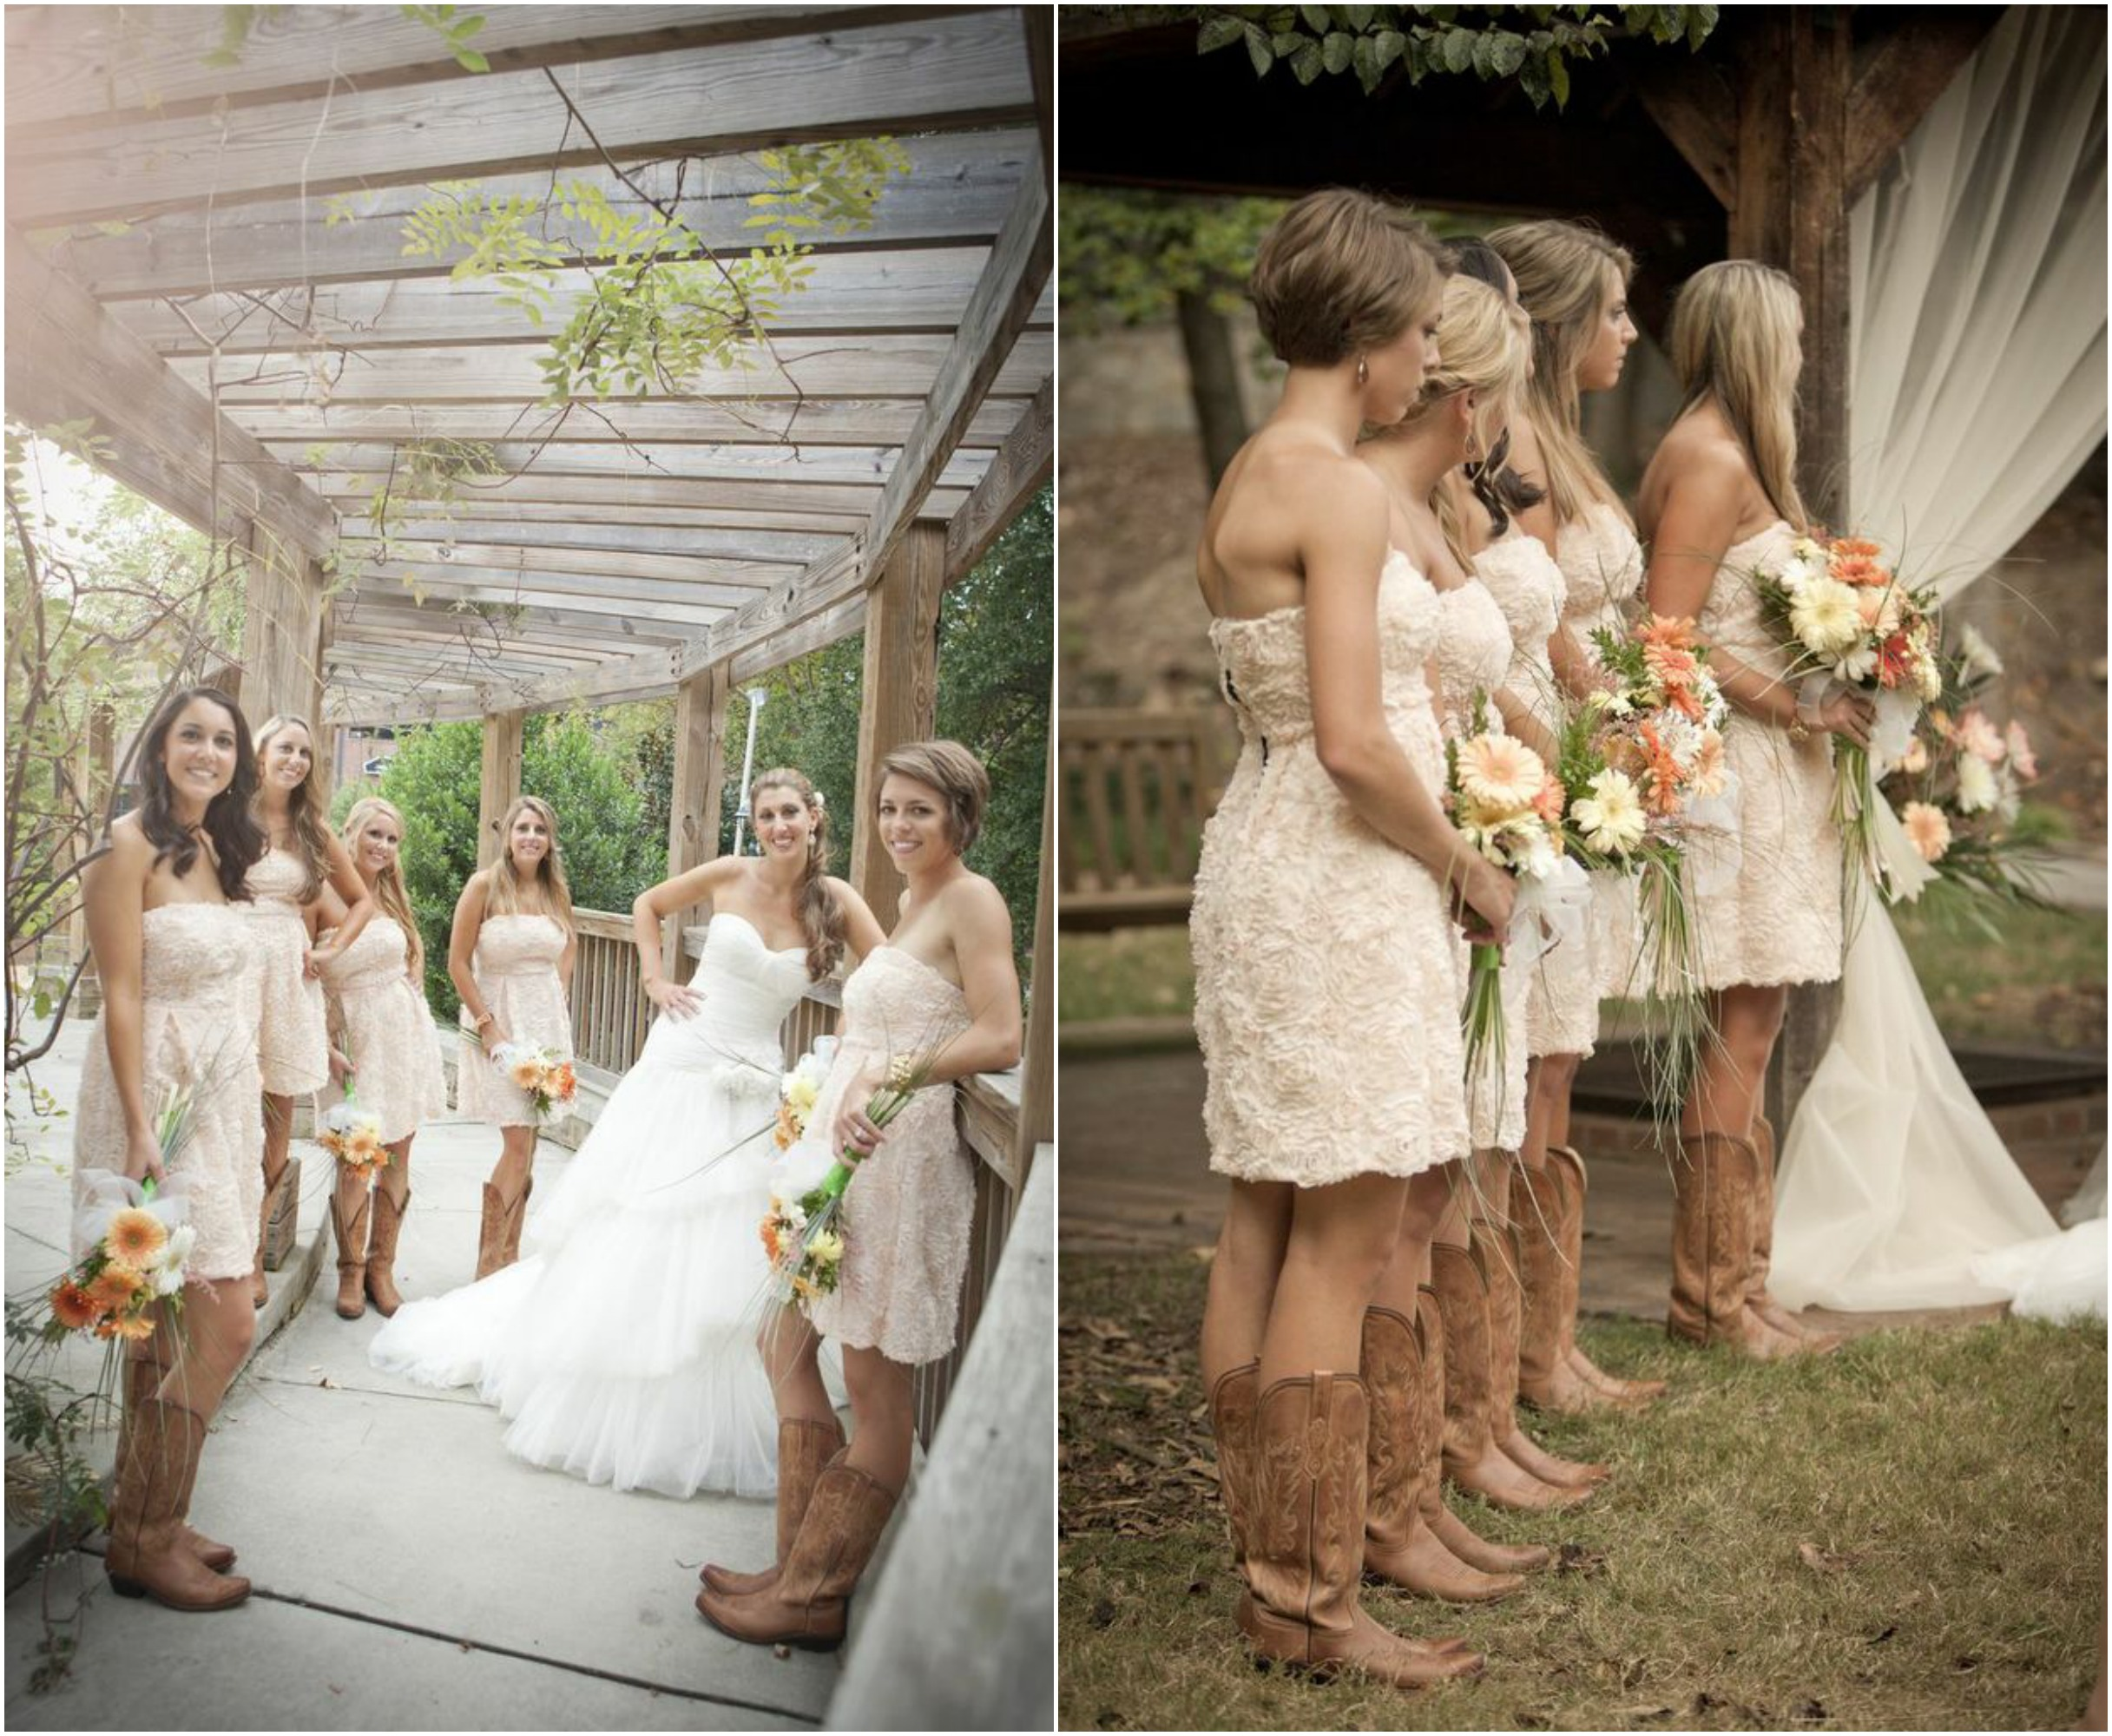 Wildcard Wednesday: Cowboy Boots | Fantastical Wedding ... - photo#3